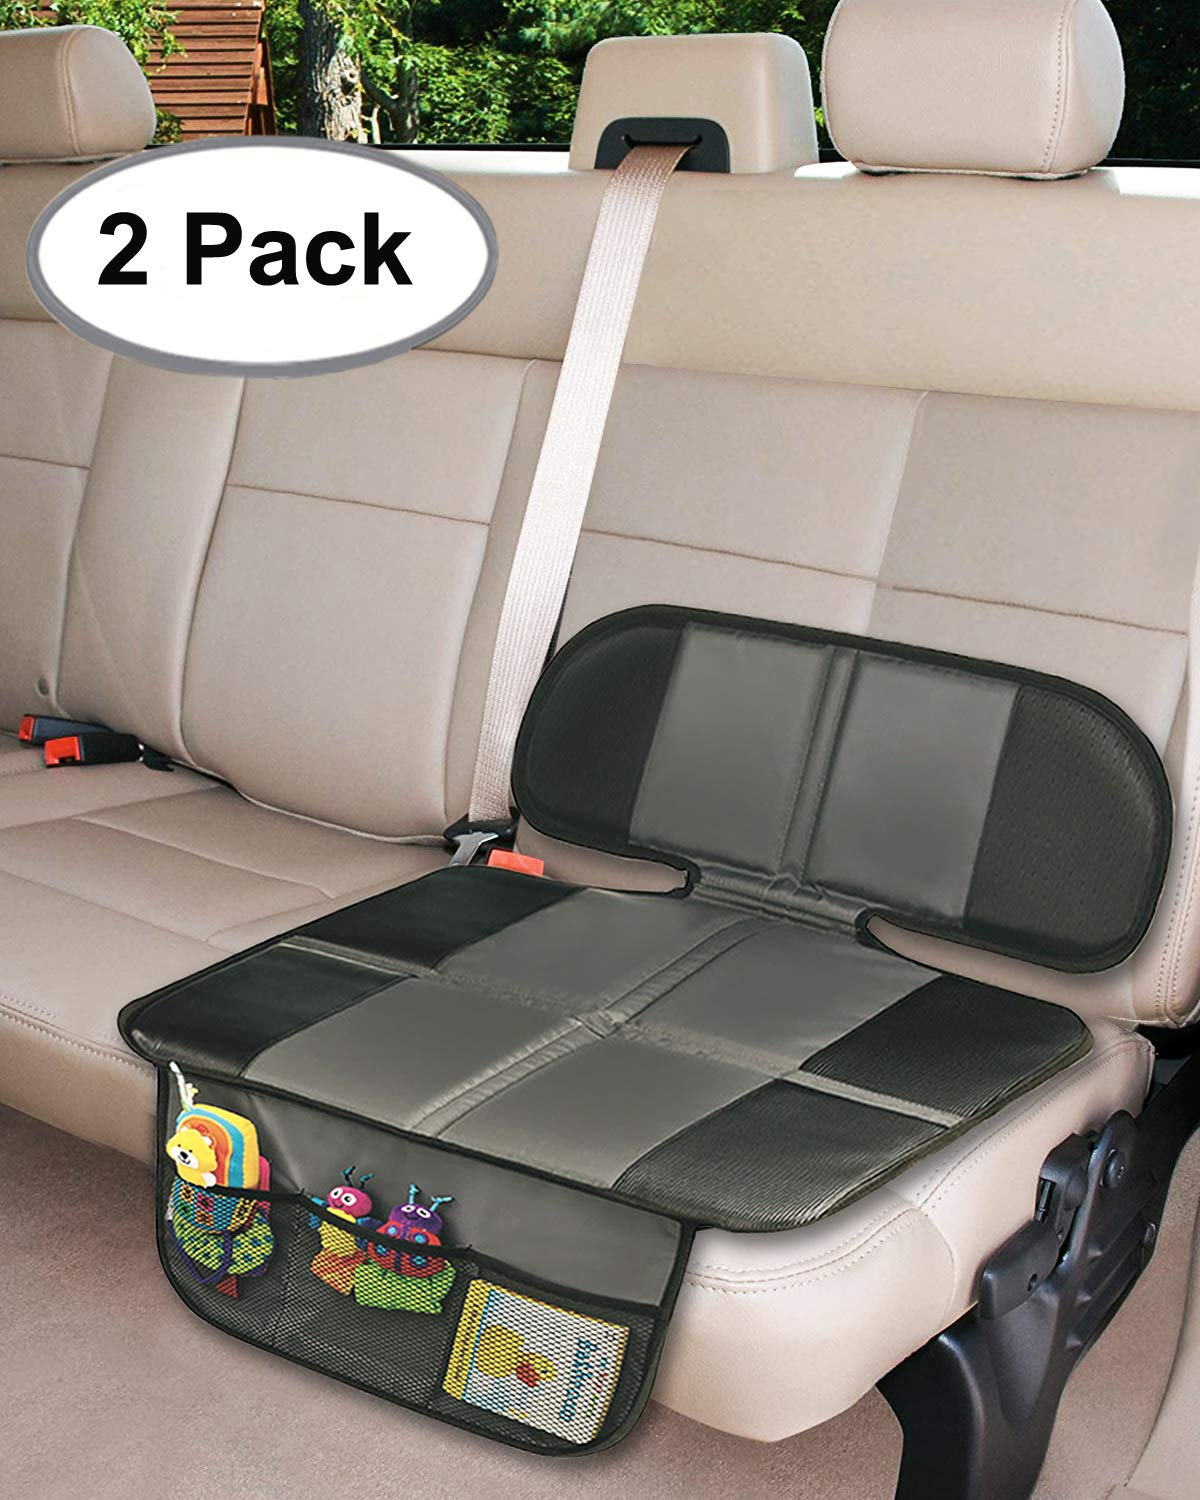 Car Seat Protector, Thick Padding Protection for Child & Baby Cars Seats, Dog Mat, Non Slip and Waterproof Protects Automotive Vehicle Upholstery with Extra Storage Pocket(Black) Big Ant